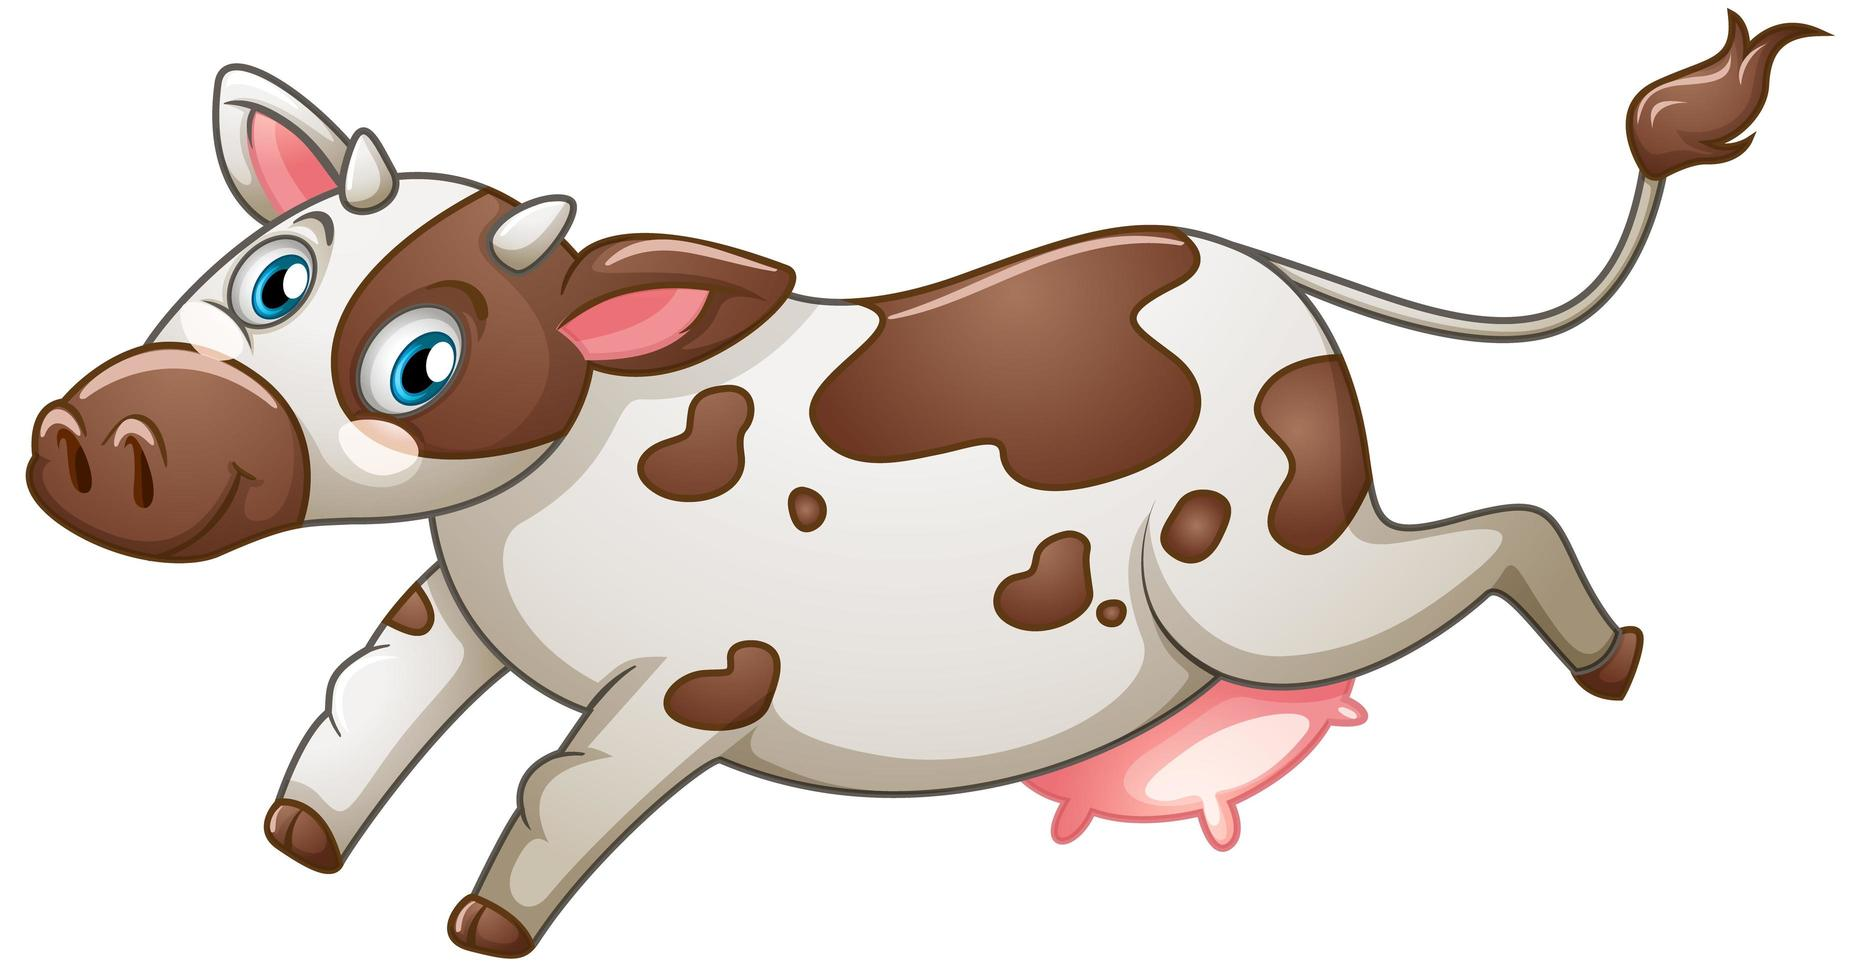 Cow on white background vector